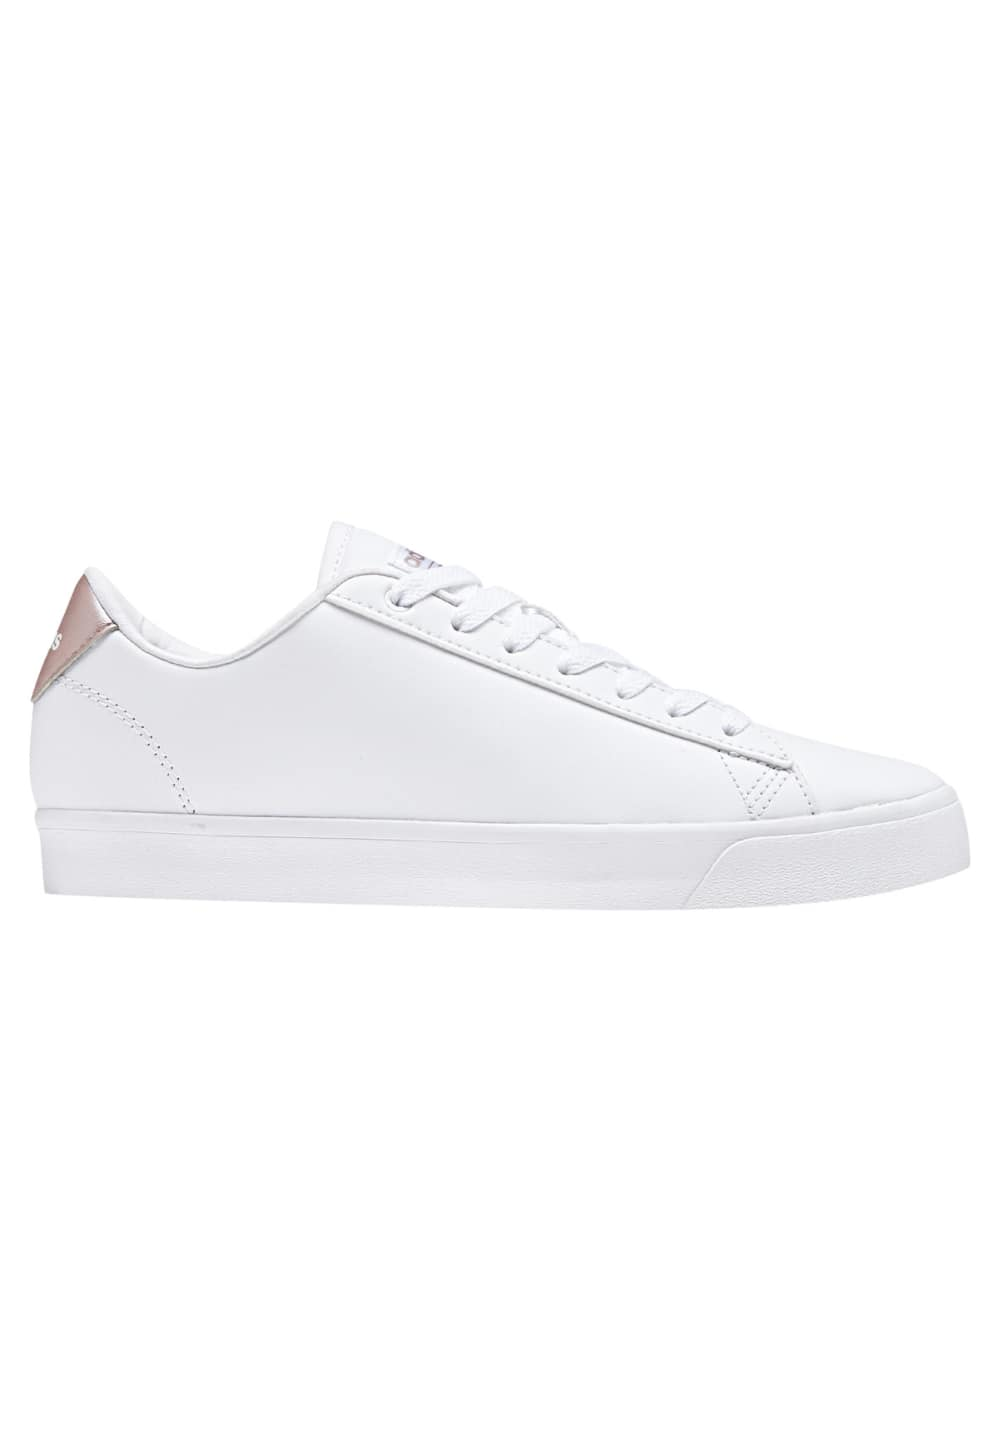 buy cheap 82e97 3f04b ... adidas neo Cf Daily Qt Cl - Sneaker for Women - White. Back to  Overview. 1 2. Previous